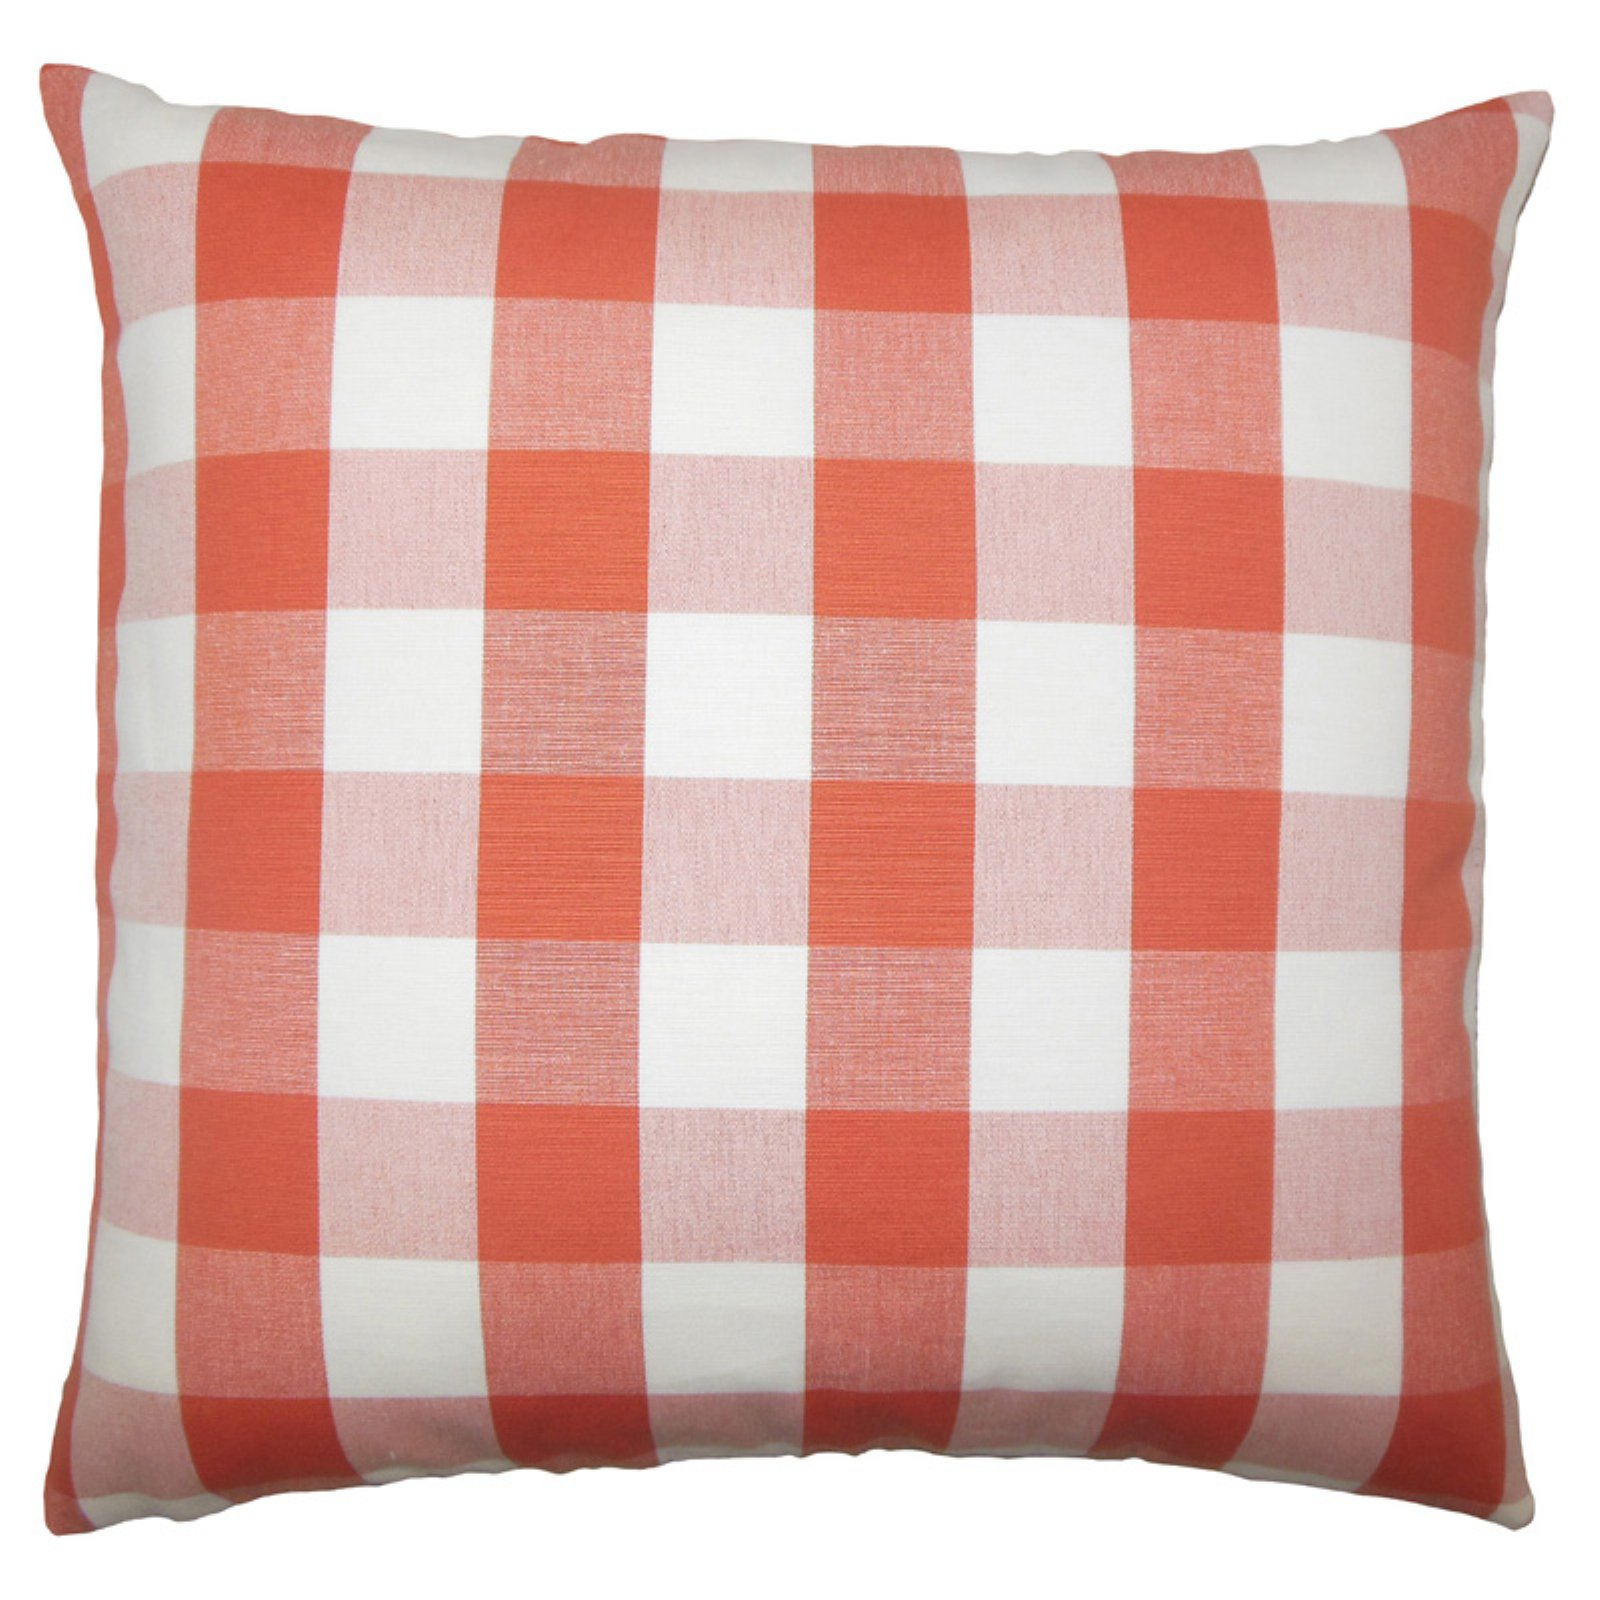 Pillow Collection Nelson Decorative Pillow by Pillow Collection Inc